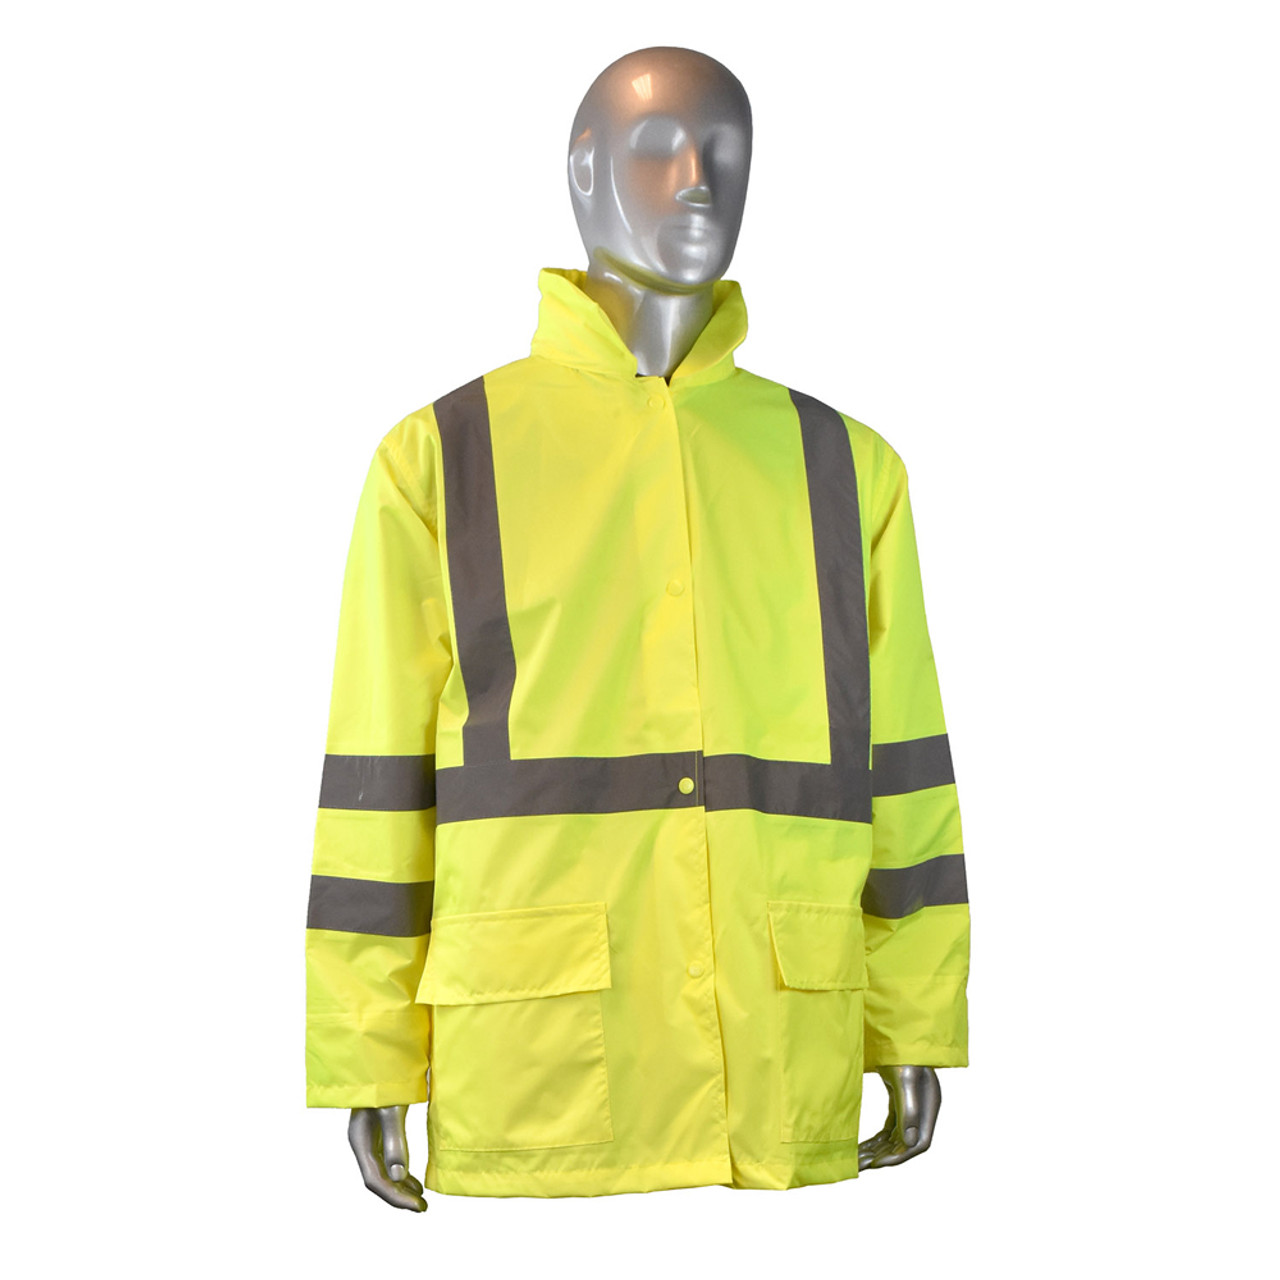 6ea6e8739 Radians ANSI Class 3 Rain Jacket And Pants - High visibility yellow rain  jacket with front